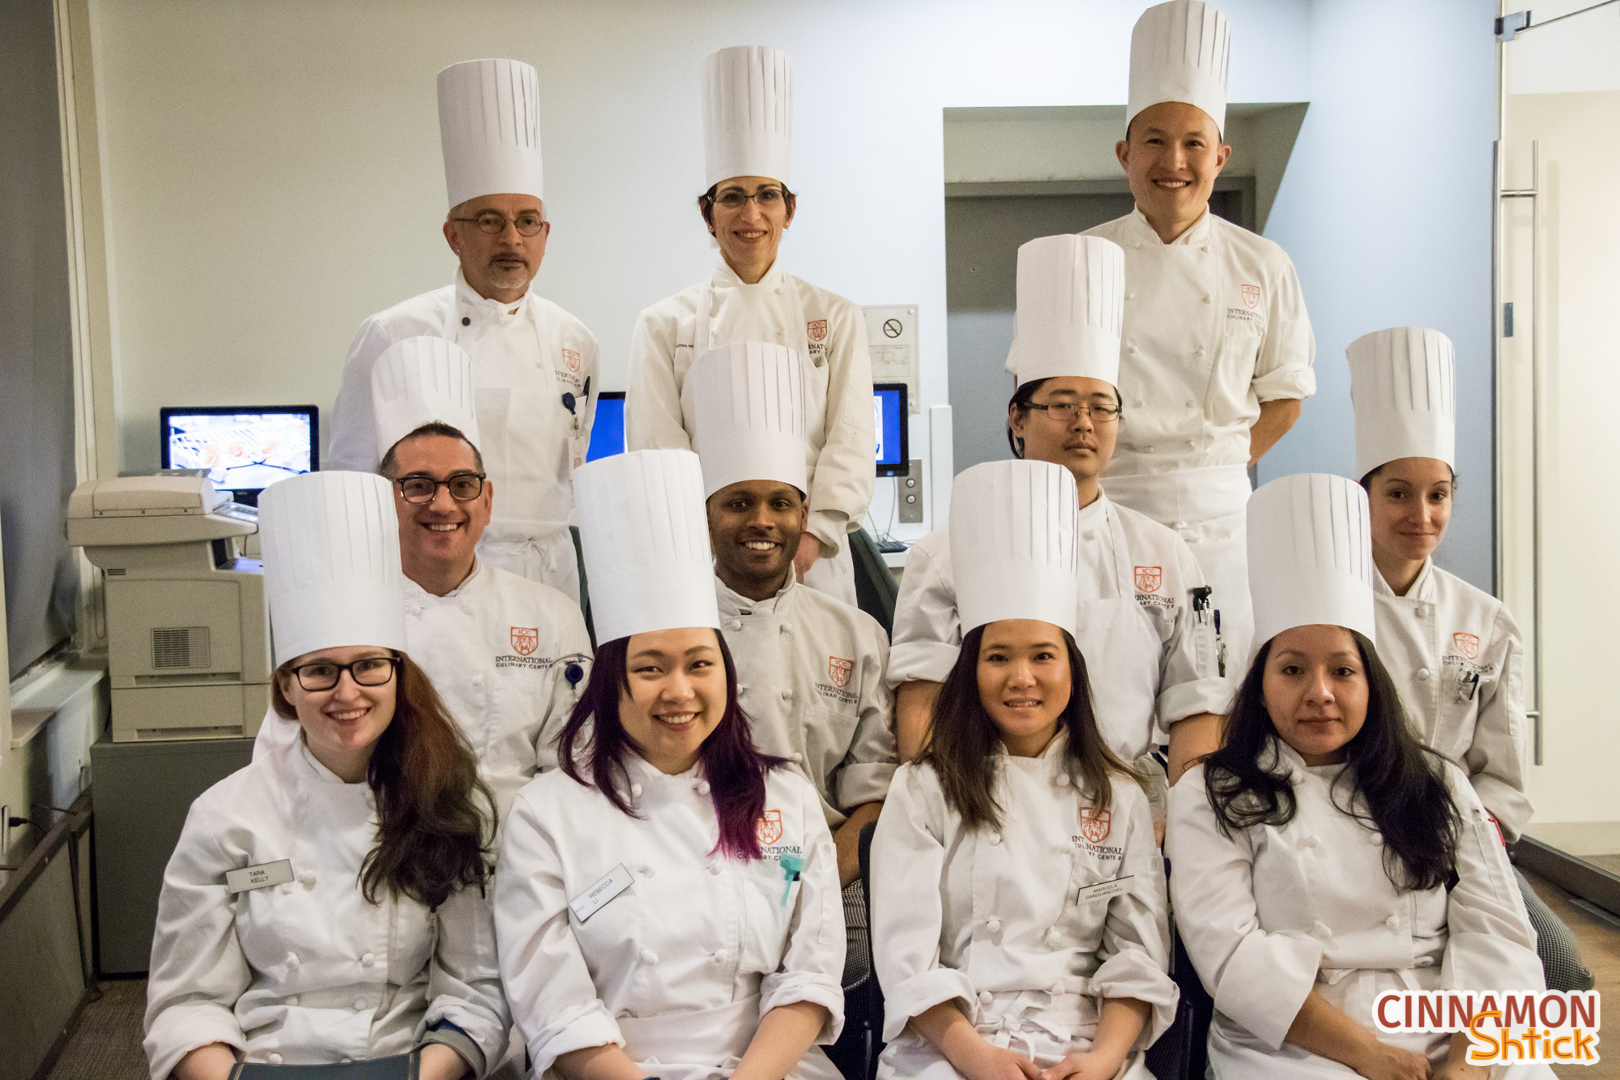 Photo of my ICC class with three of our chef instructors